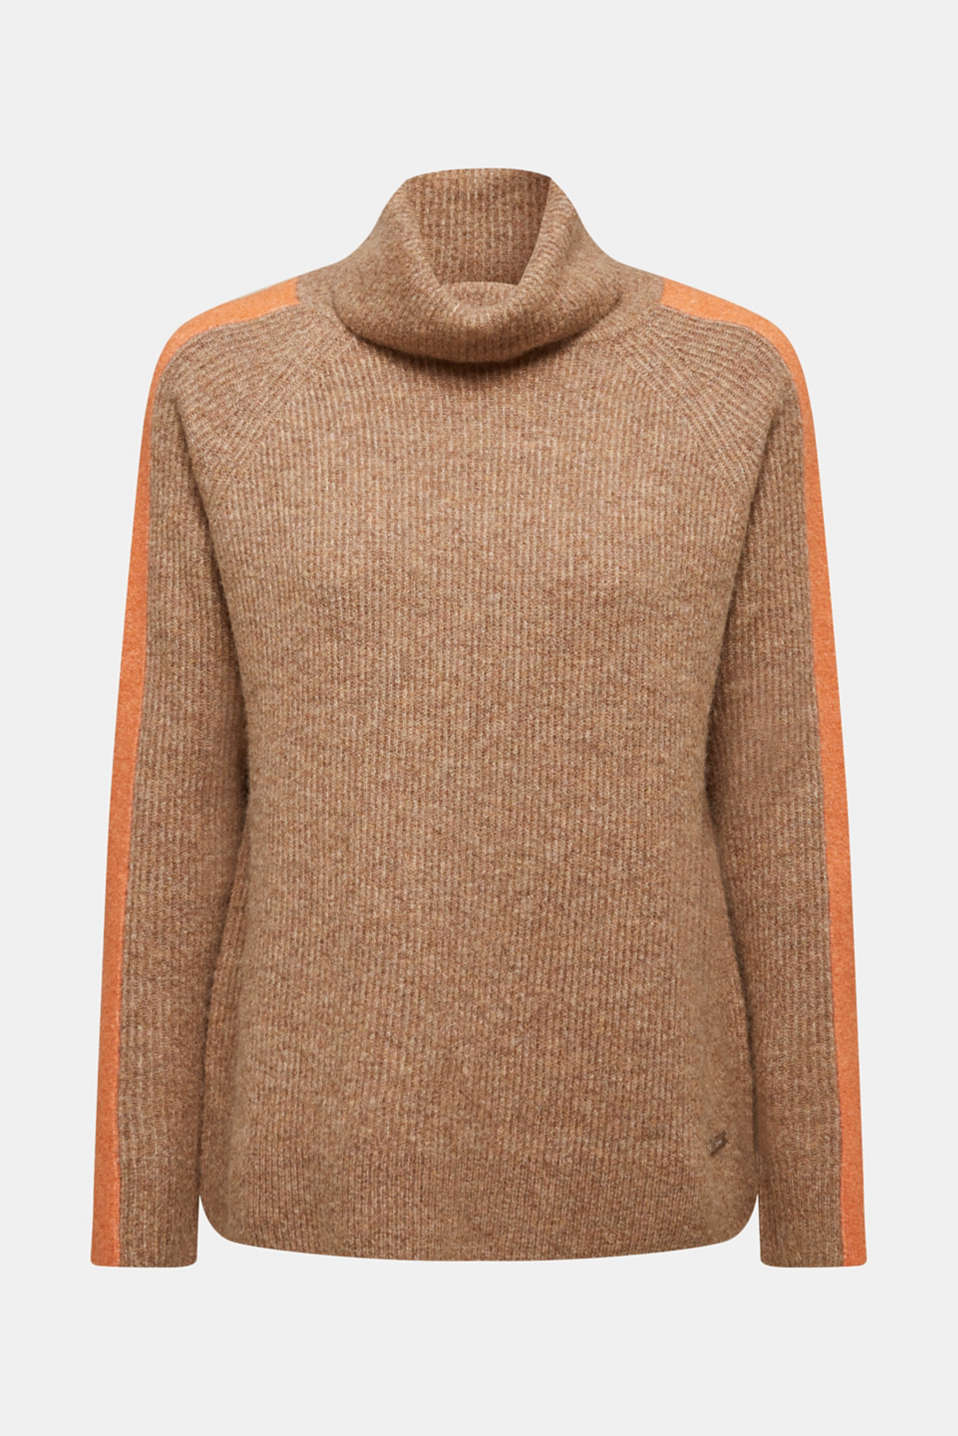 Polo neck jumper with racing stripes and wool, CAMEL 4, detail image number 7